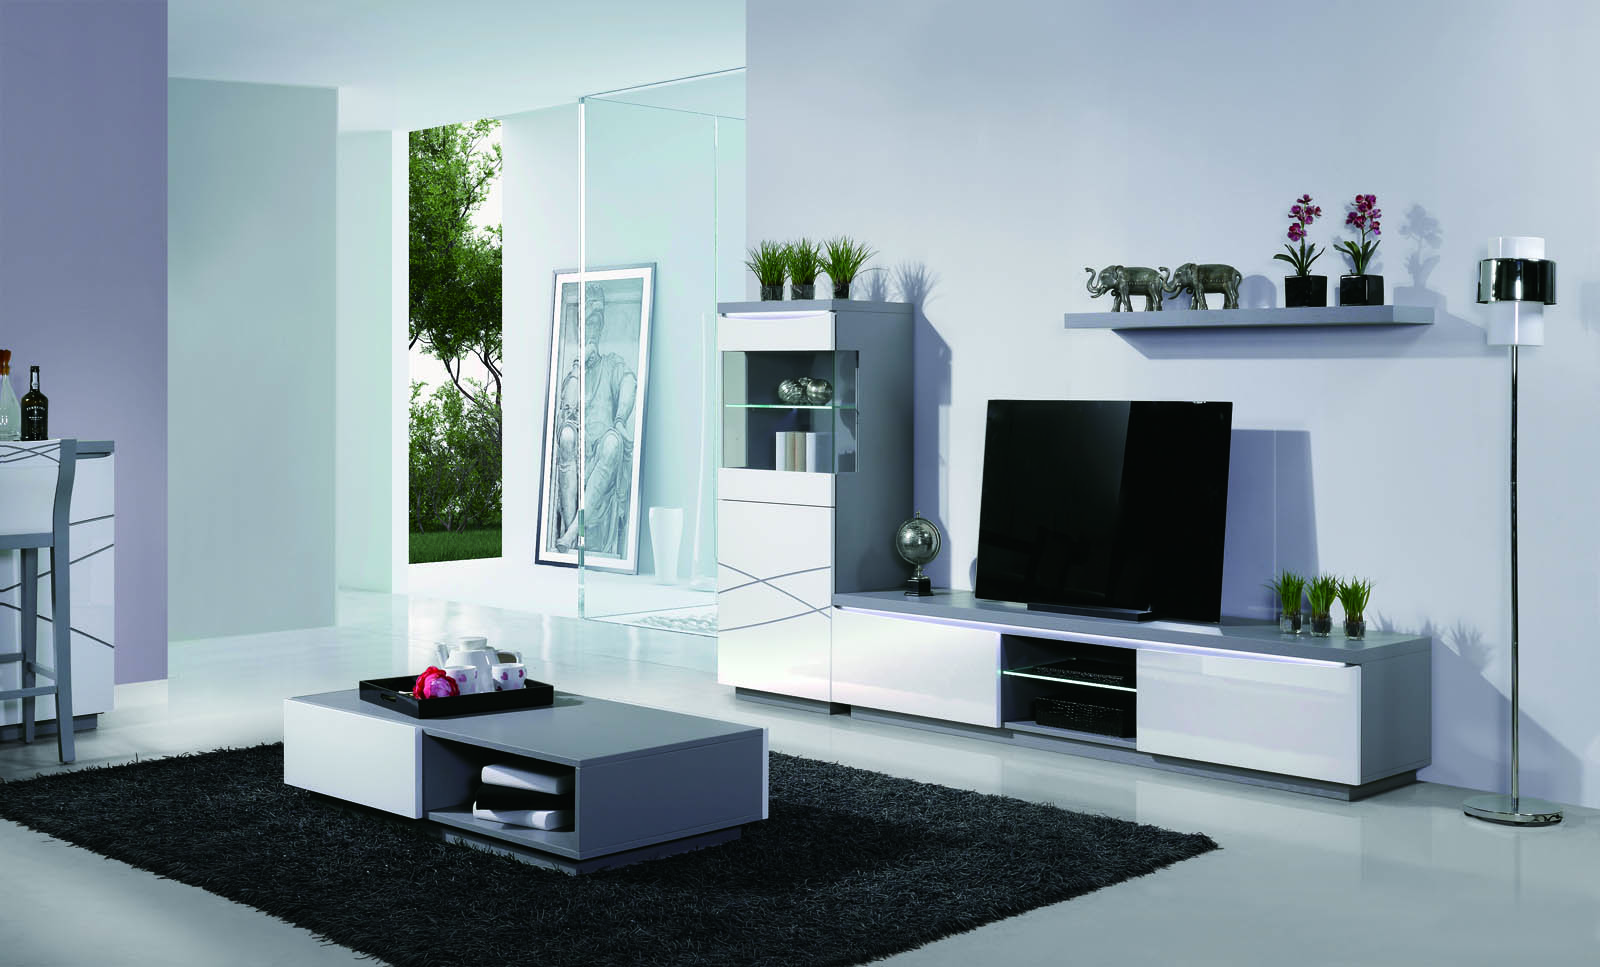 meuble tv palace 2 urban design magasin de meubles antibes urban design. Black Bedroom Furniture Sets. Home Design Ideas